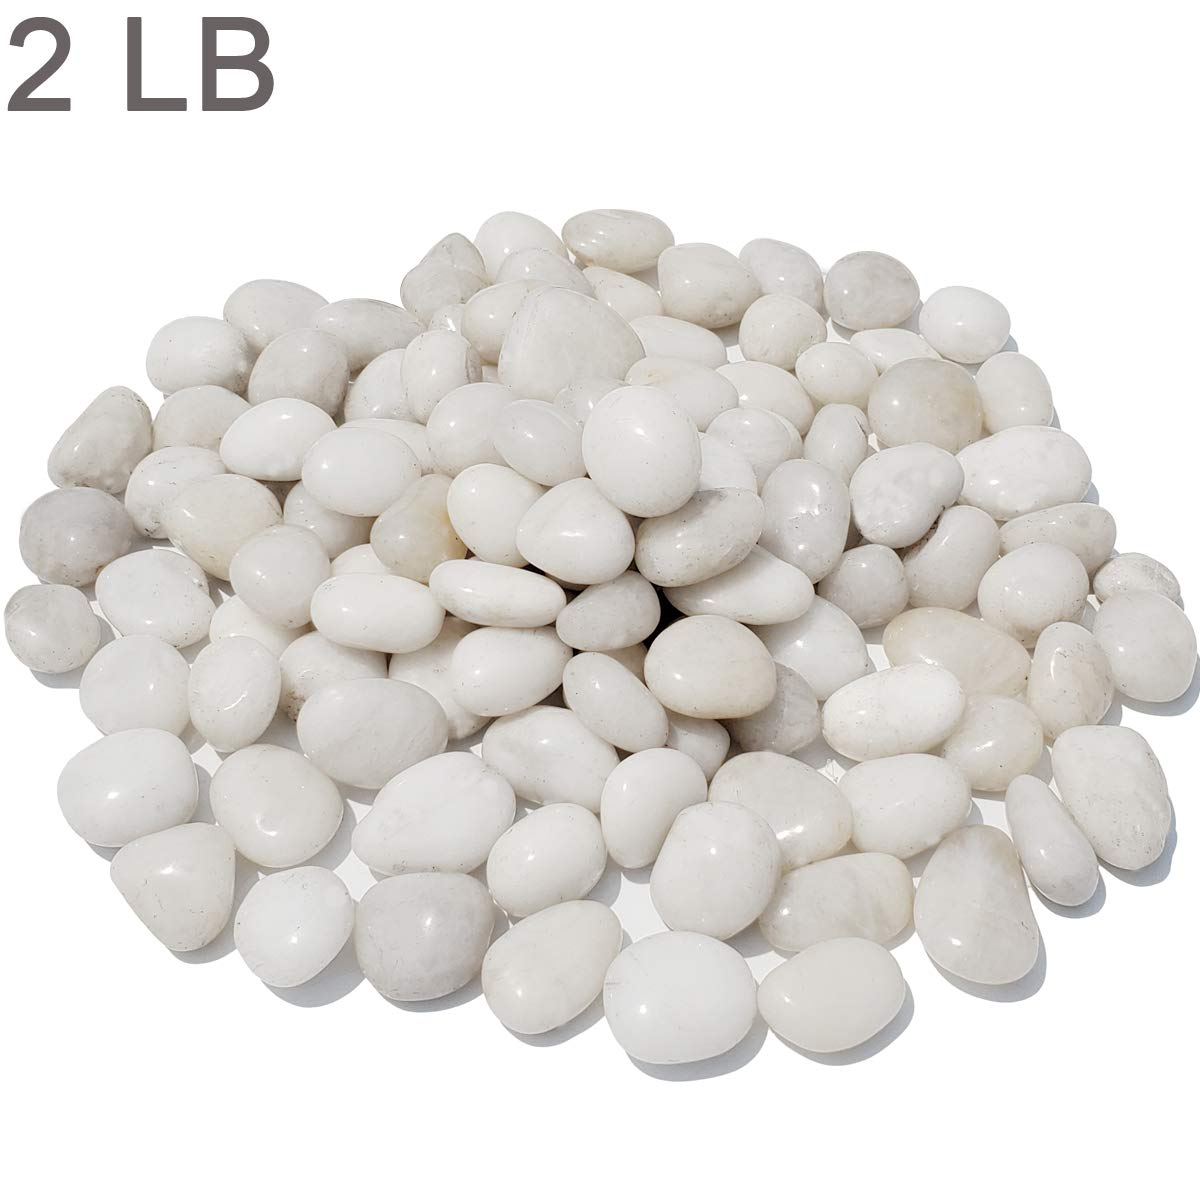 """M--jump 2 Pounds 1"""" - 2"""" Gravel Size Natural Decorative Stones Polished White Pebbles Use in Glassware, Like Vases, Aquariums and Terrariums to Enhance The Appearance"""